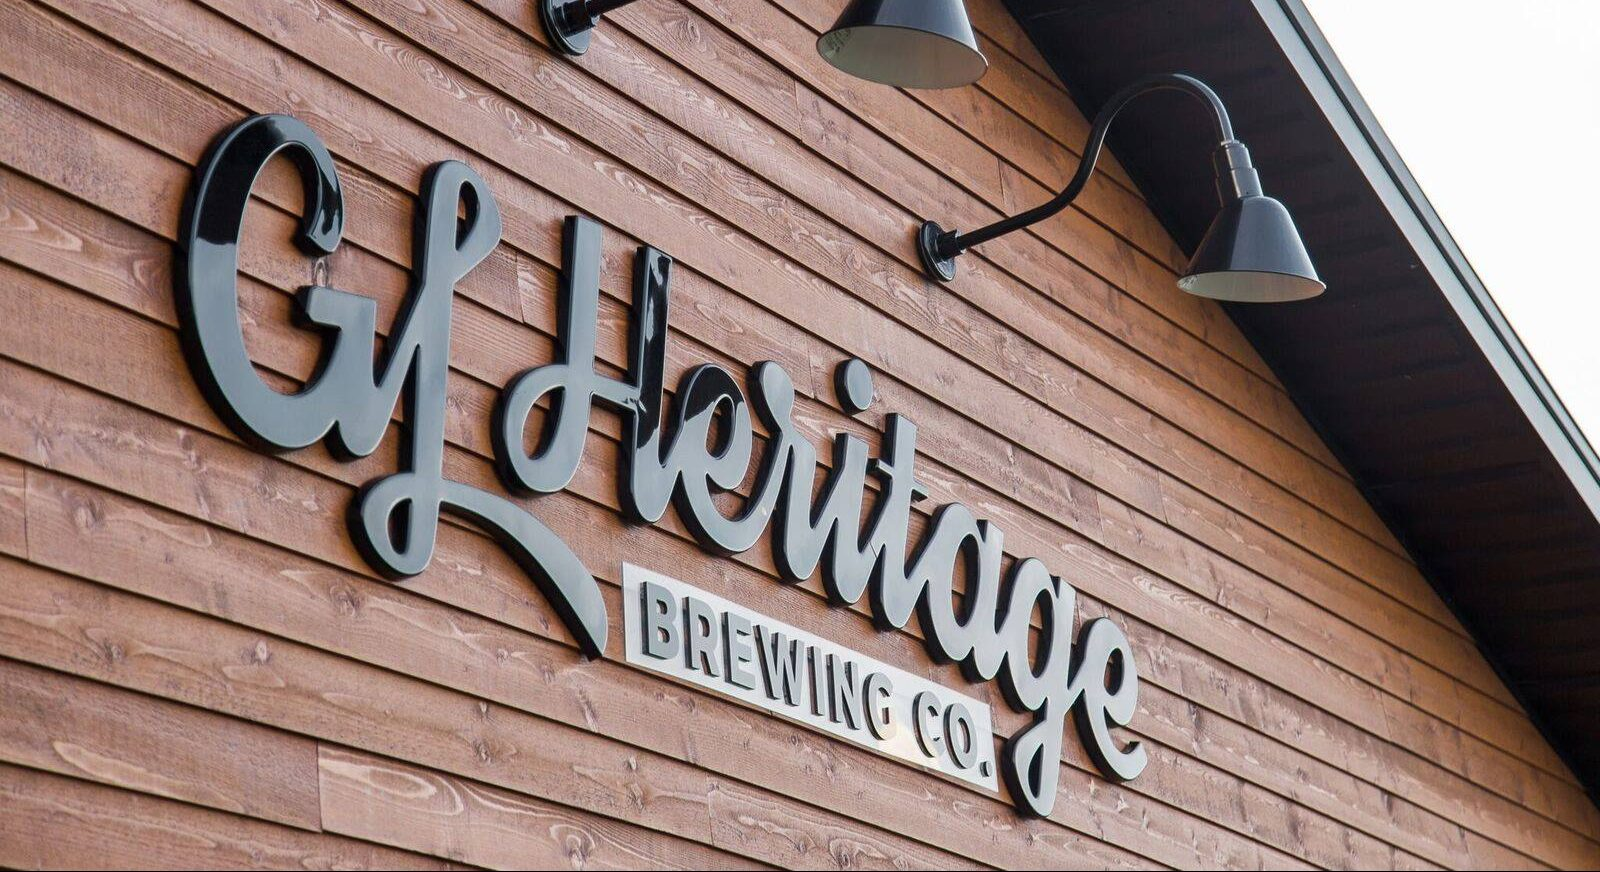 GL Heritage Brewing Co. in Amherstburg, Ontario.